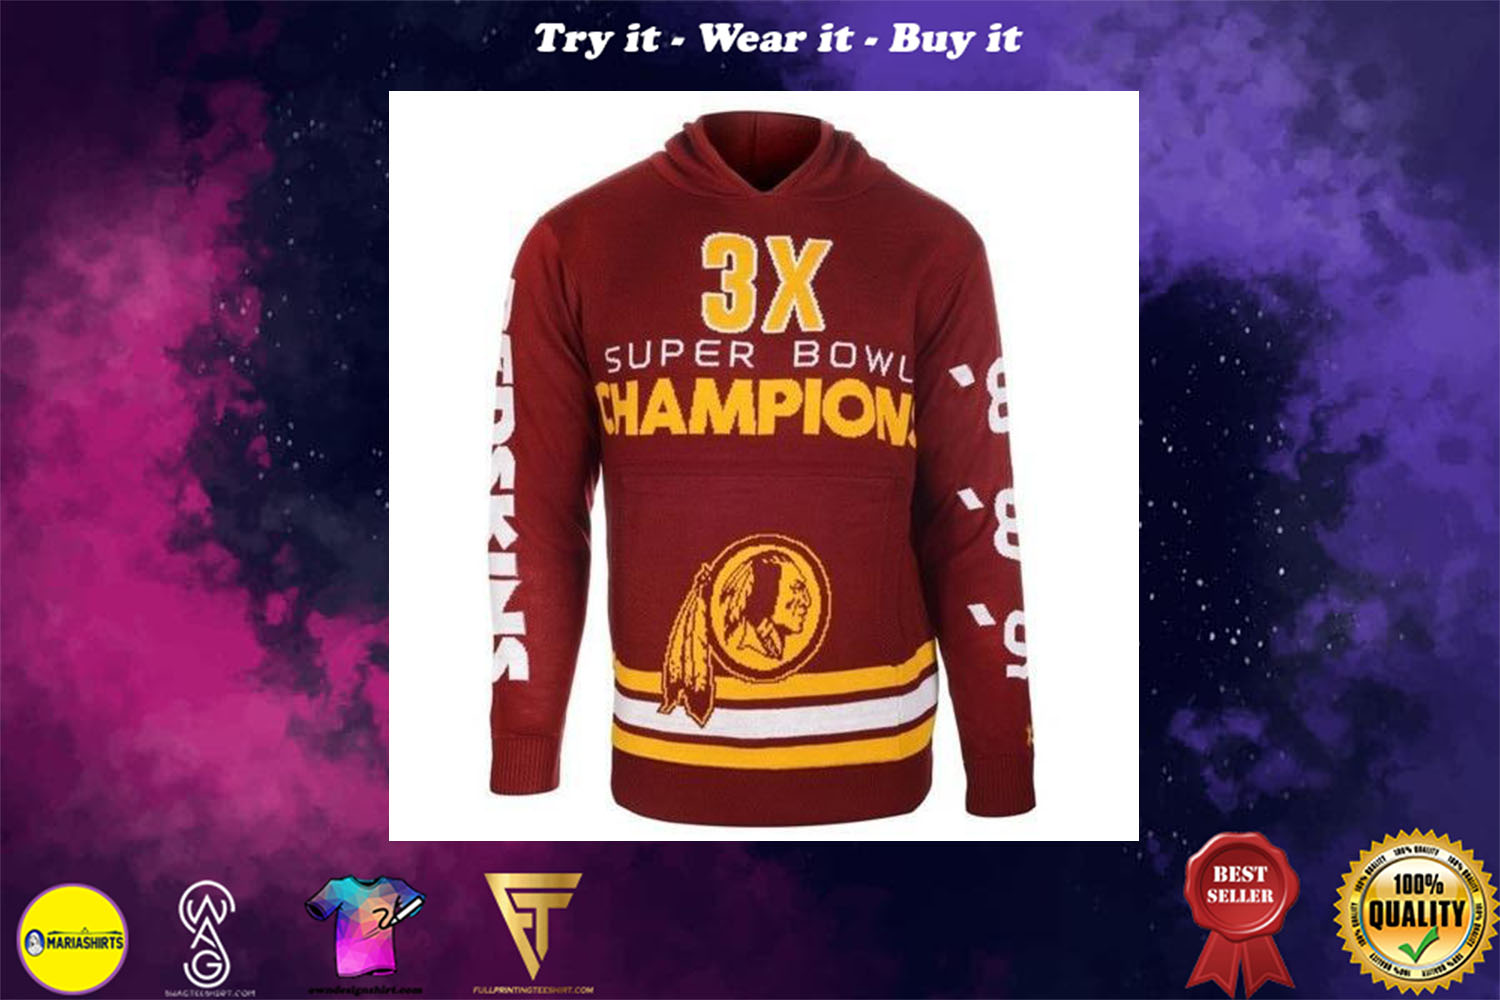 [special edition] the washington redskins super bowl champions full over print shirt - maria